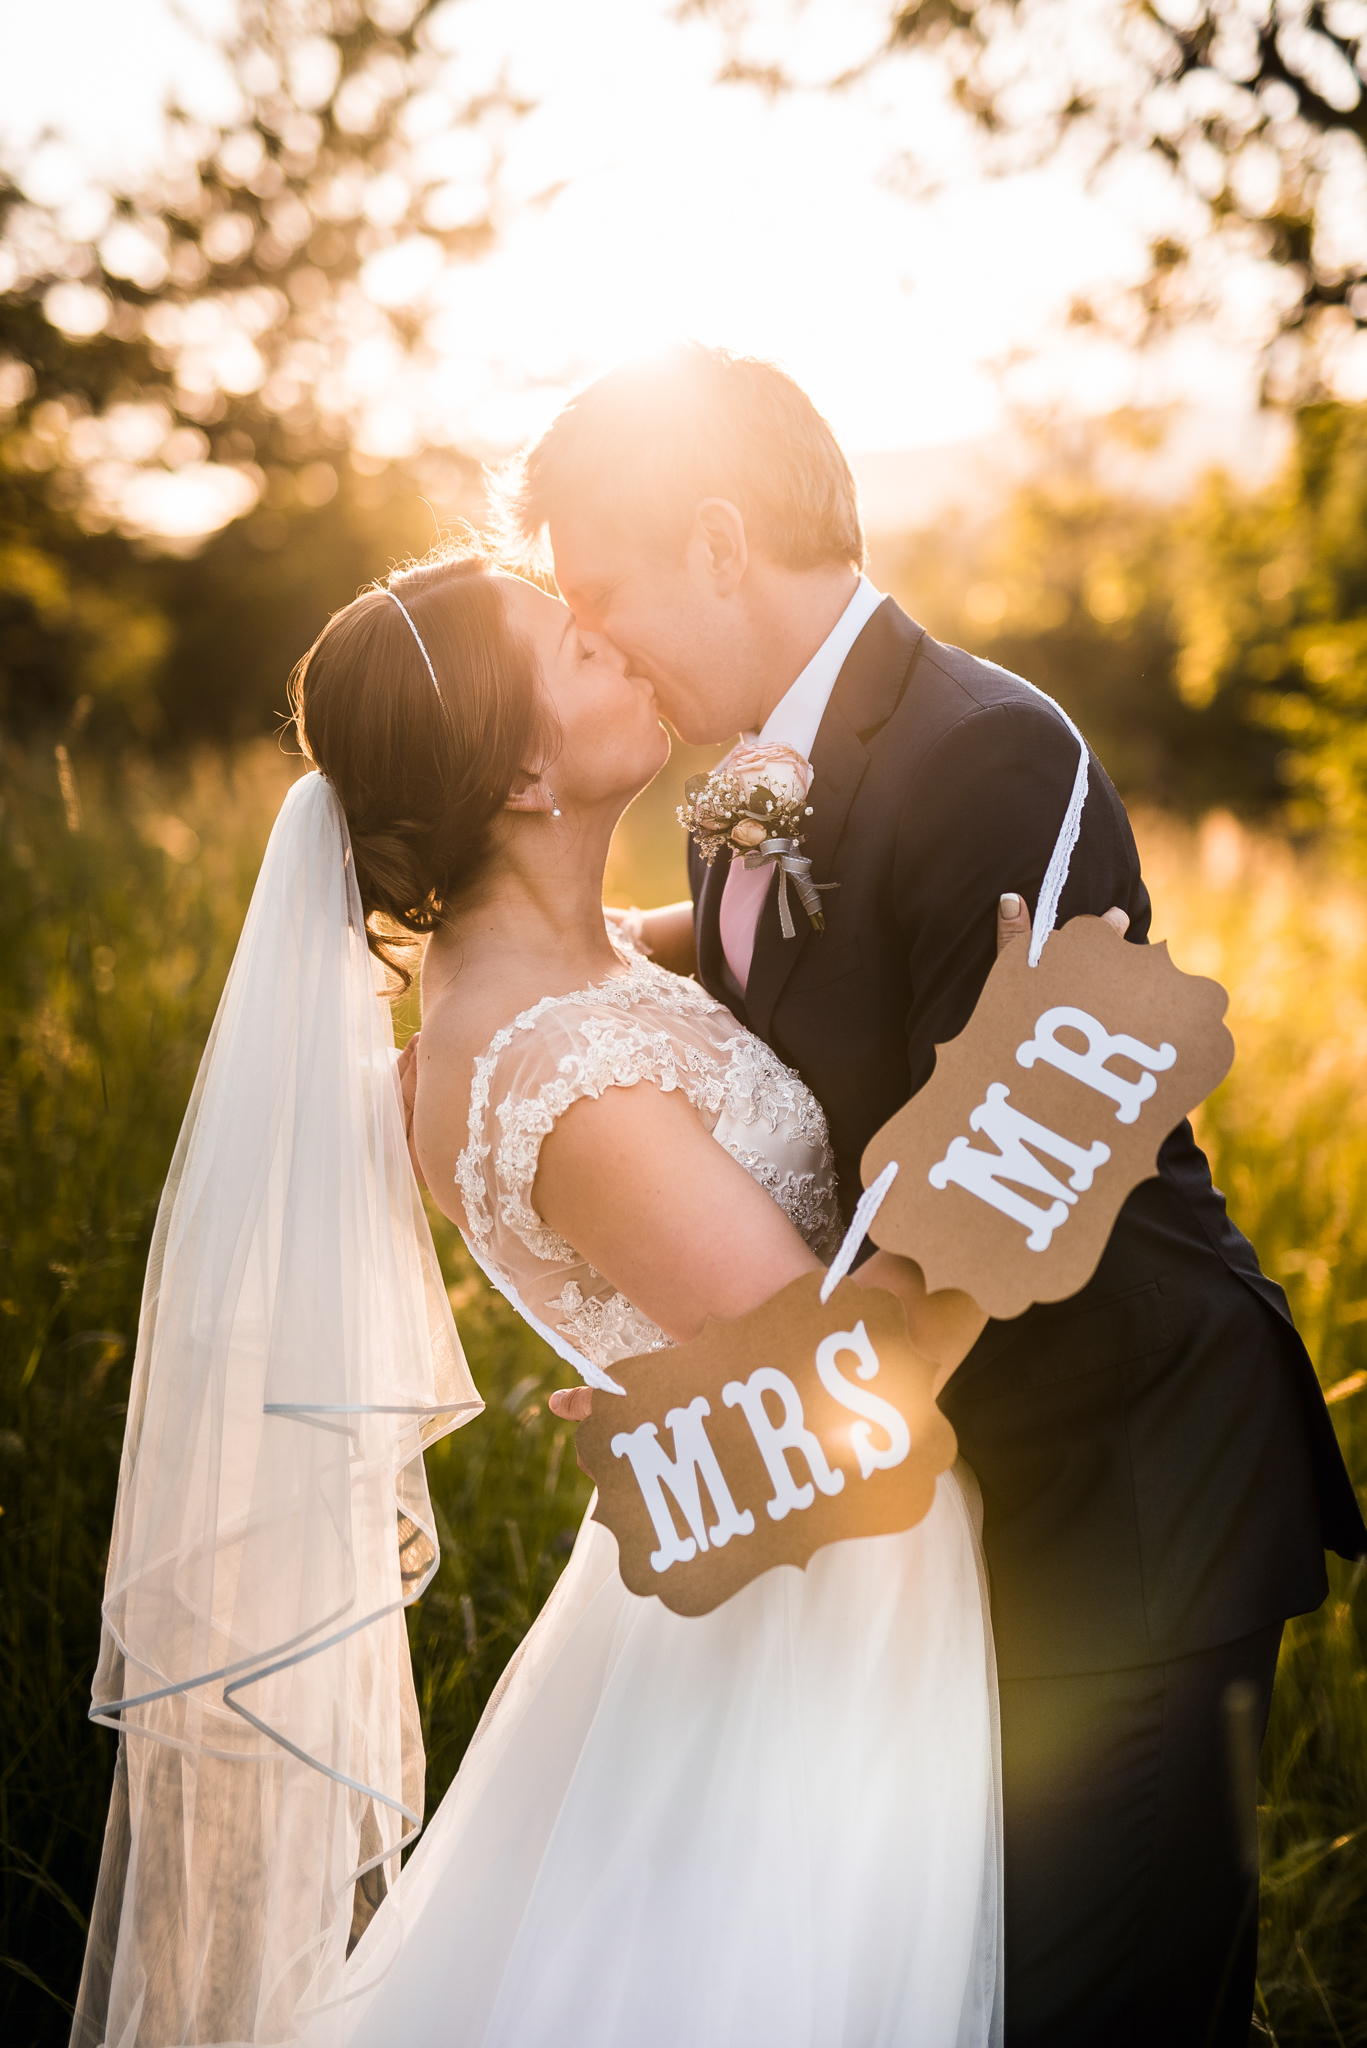 sunset, bride, groom, wedding dress, mrs, mr, love, kiss, Slovakia, backlight, romantic, beautiful, nature, summer, spring